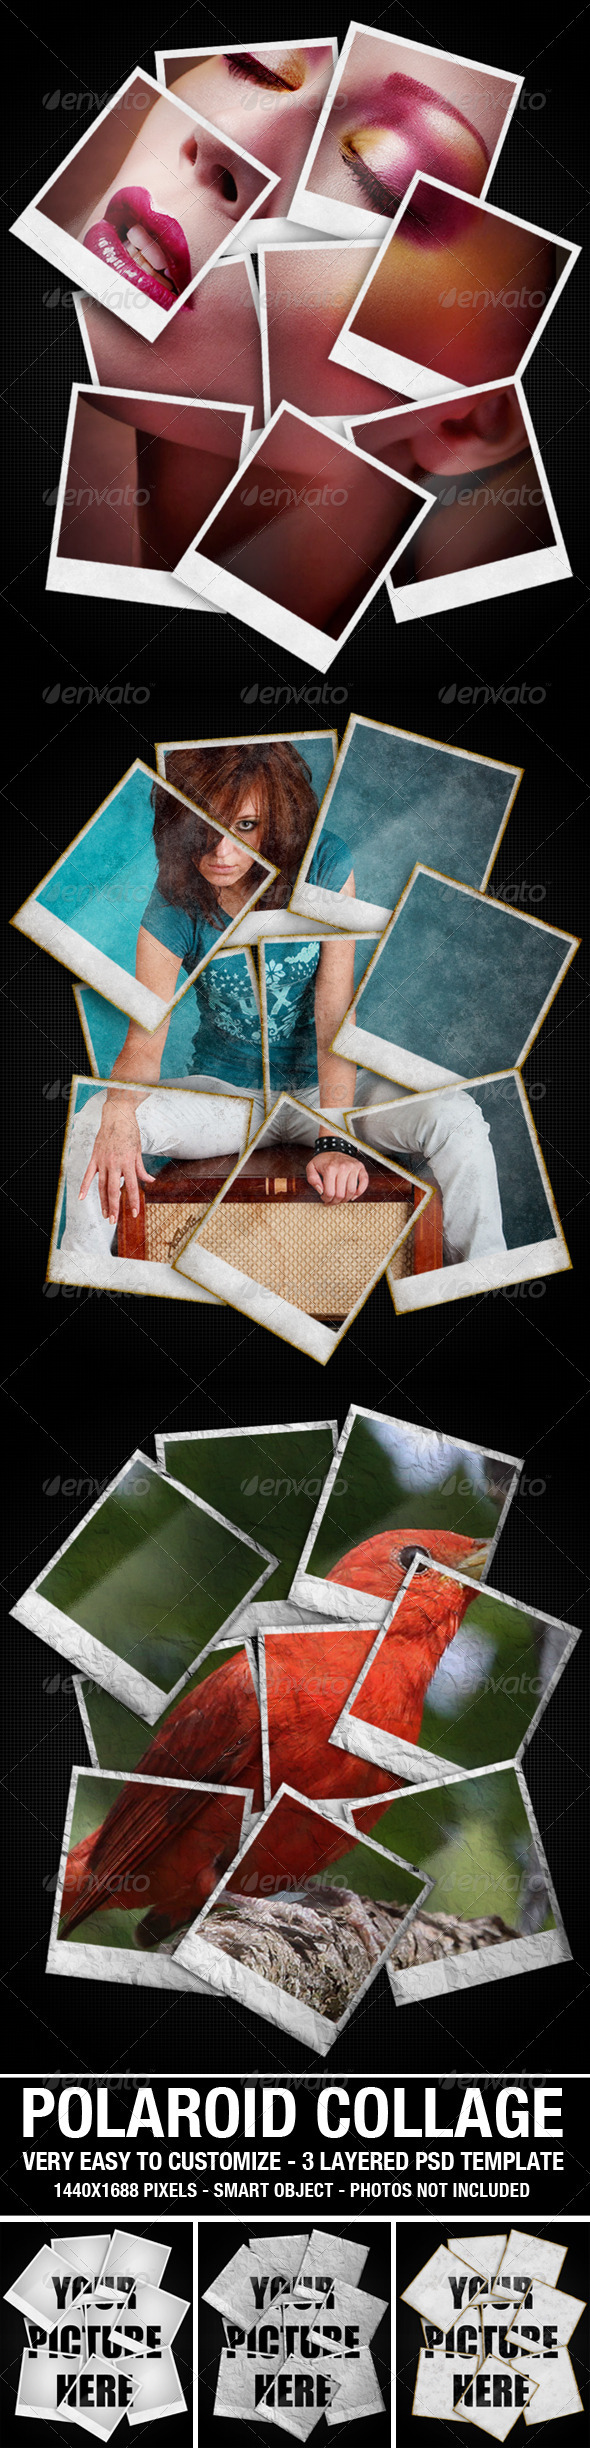 how to create a polaroid photo collage using photoshop cs6. Black Bedroom Furniture Sets. Home Design Ideas